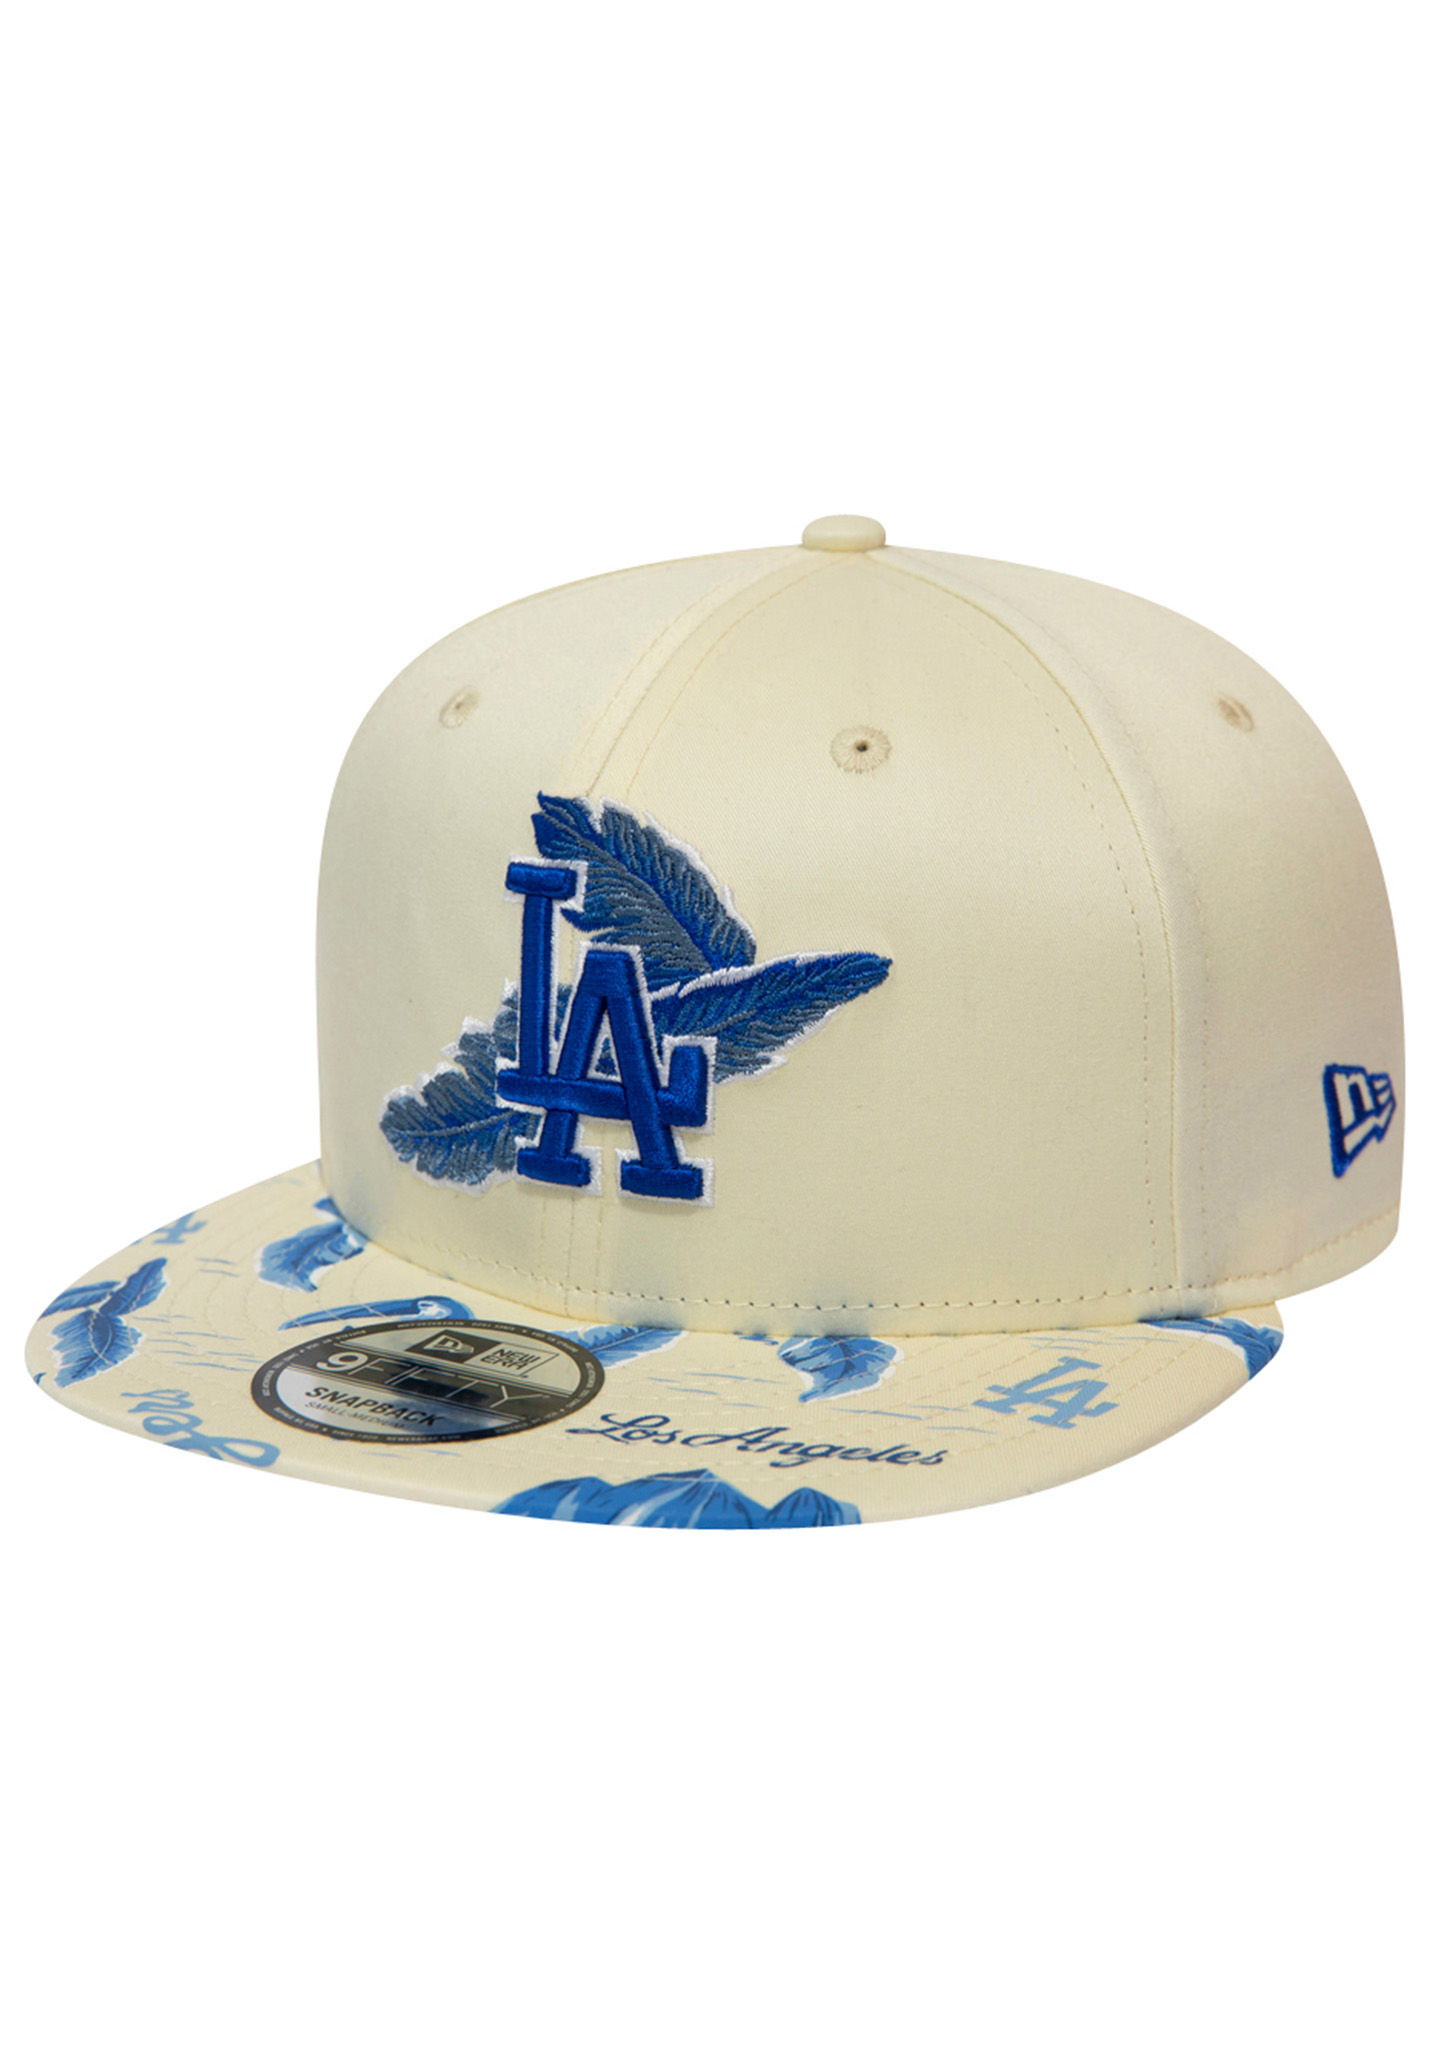 8825af6b31ac2 NEW Era 9Fifty Los Angeles Dodgers - Casquette snapback - Beige - Planet  Sports